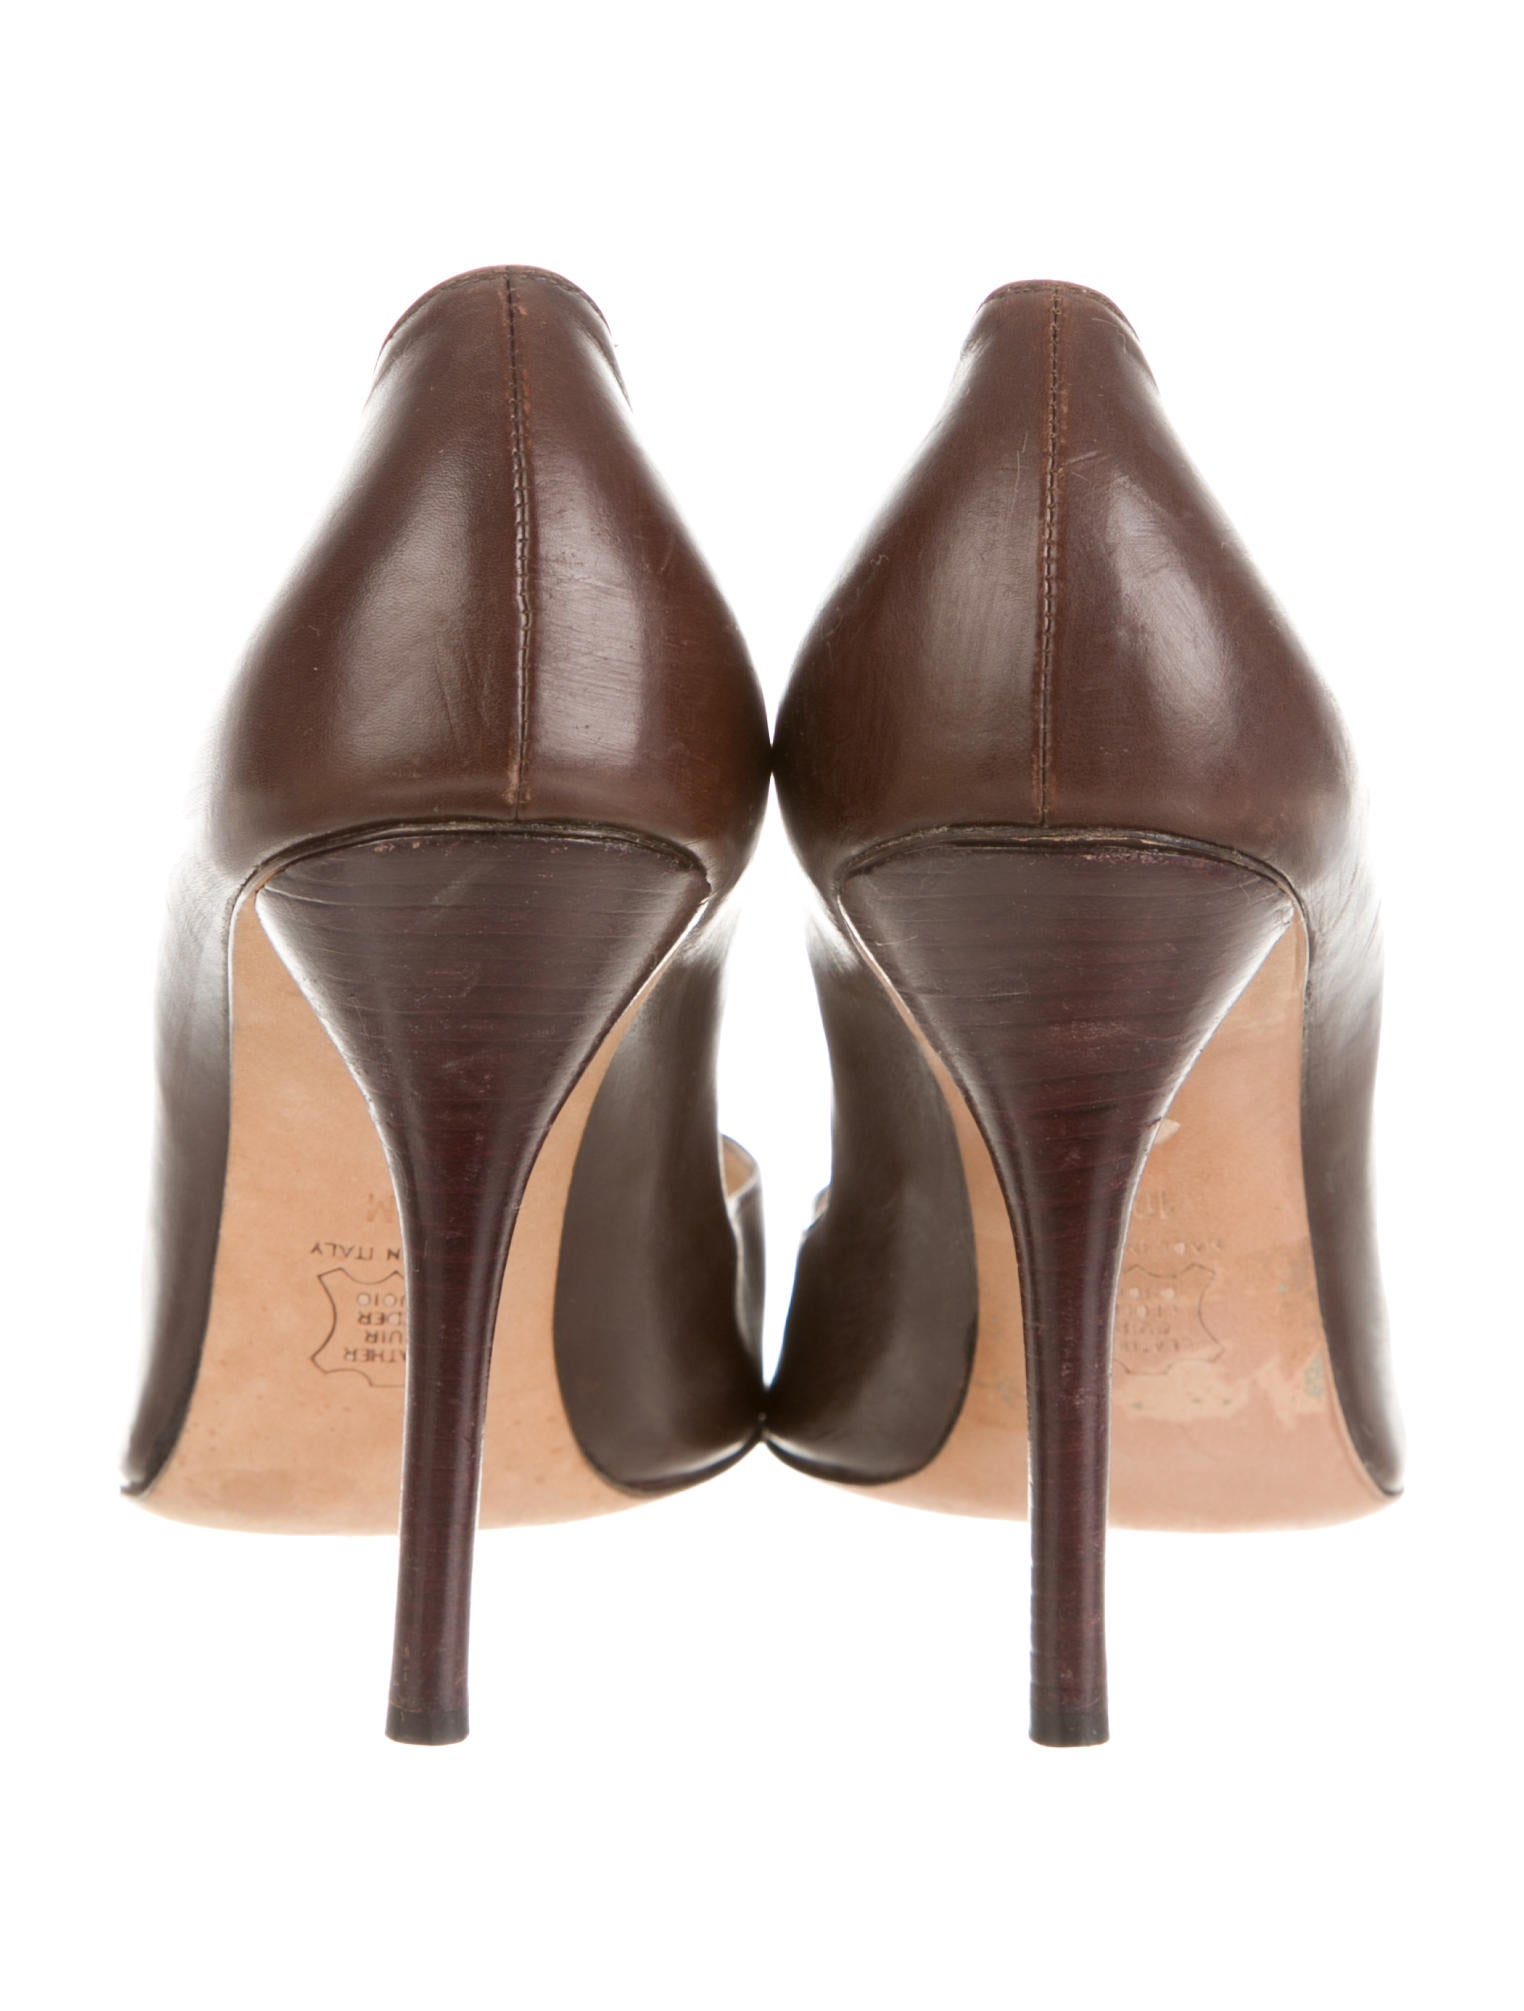 michael kors leather pointed toe pumps shoes mic36136